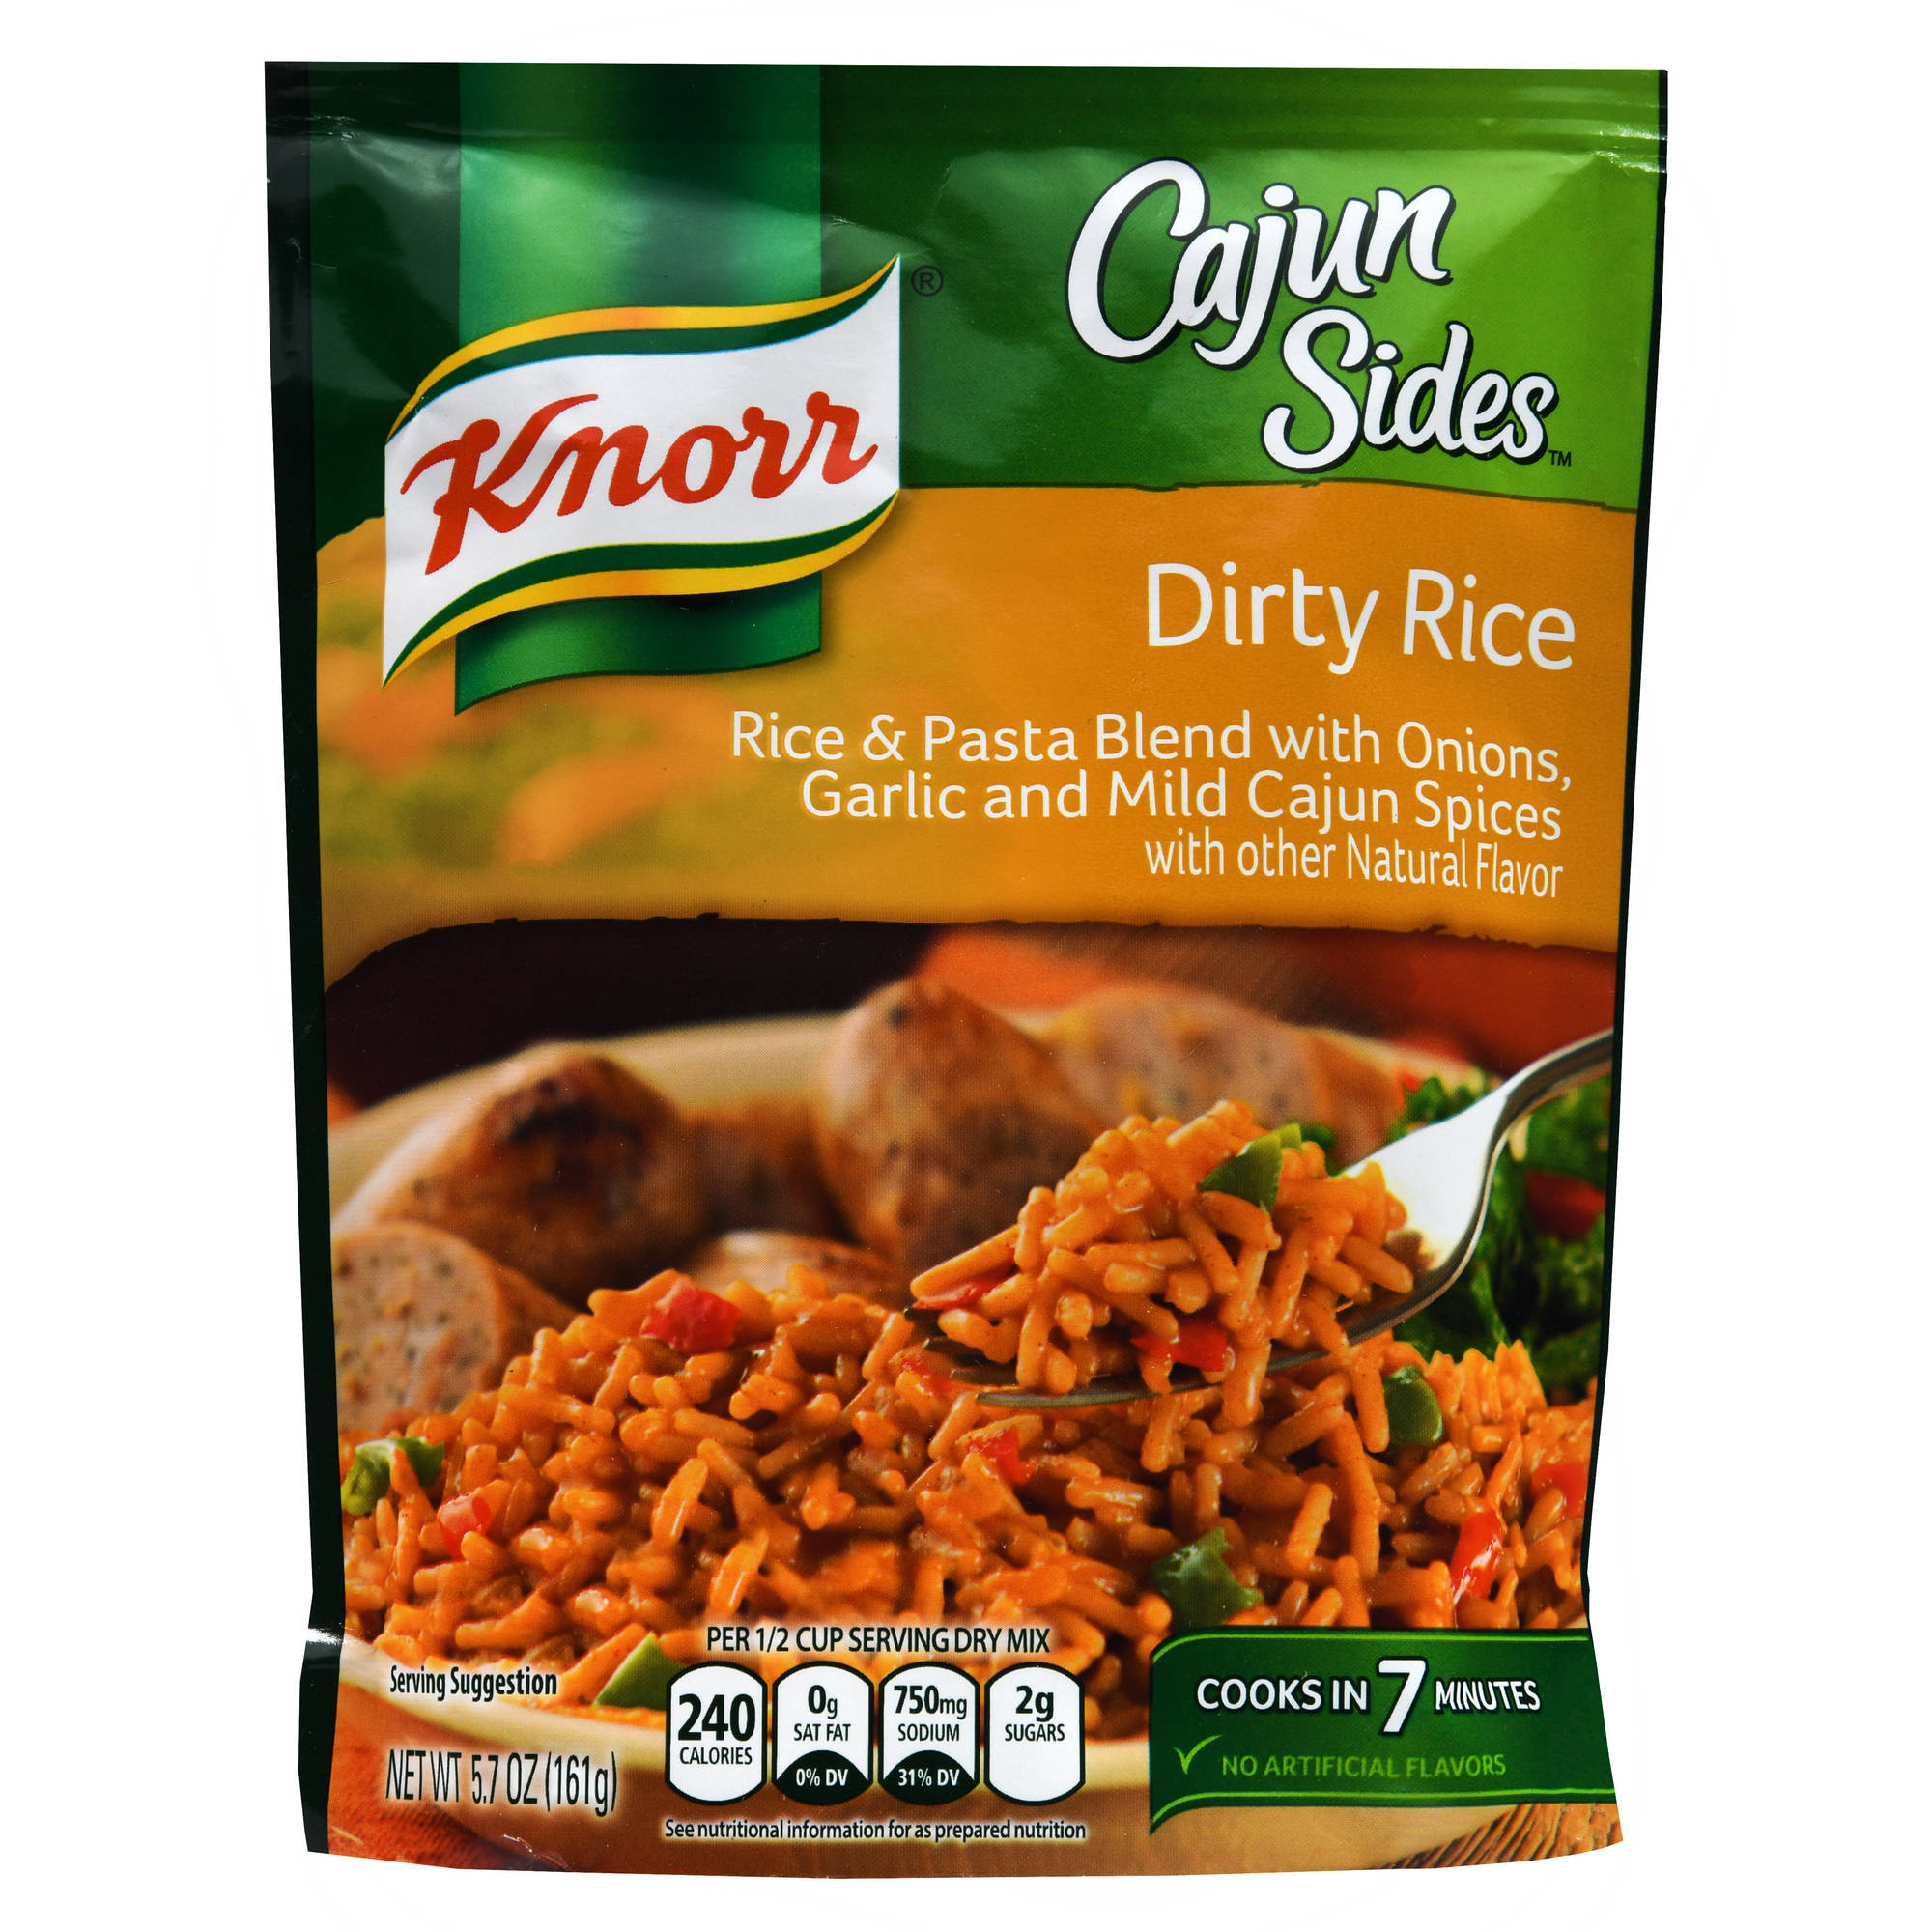 Knorr Cajun Sides Rice Side Dish Dirty Rice, 5.7 oz